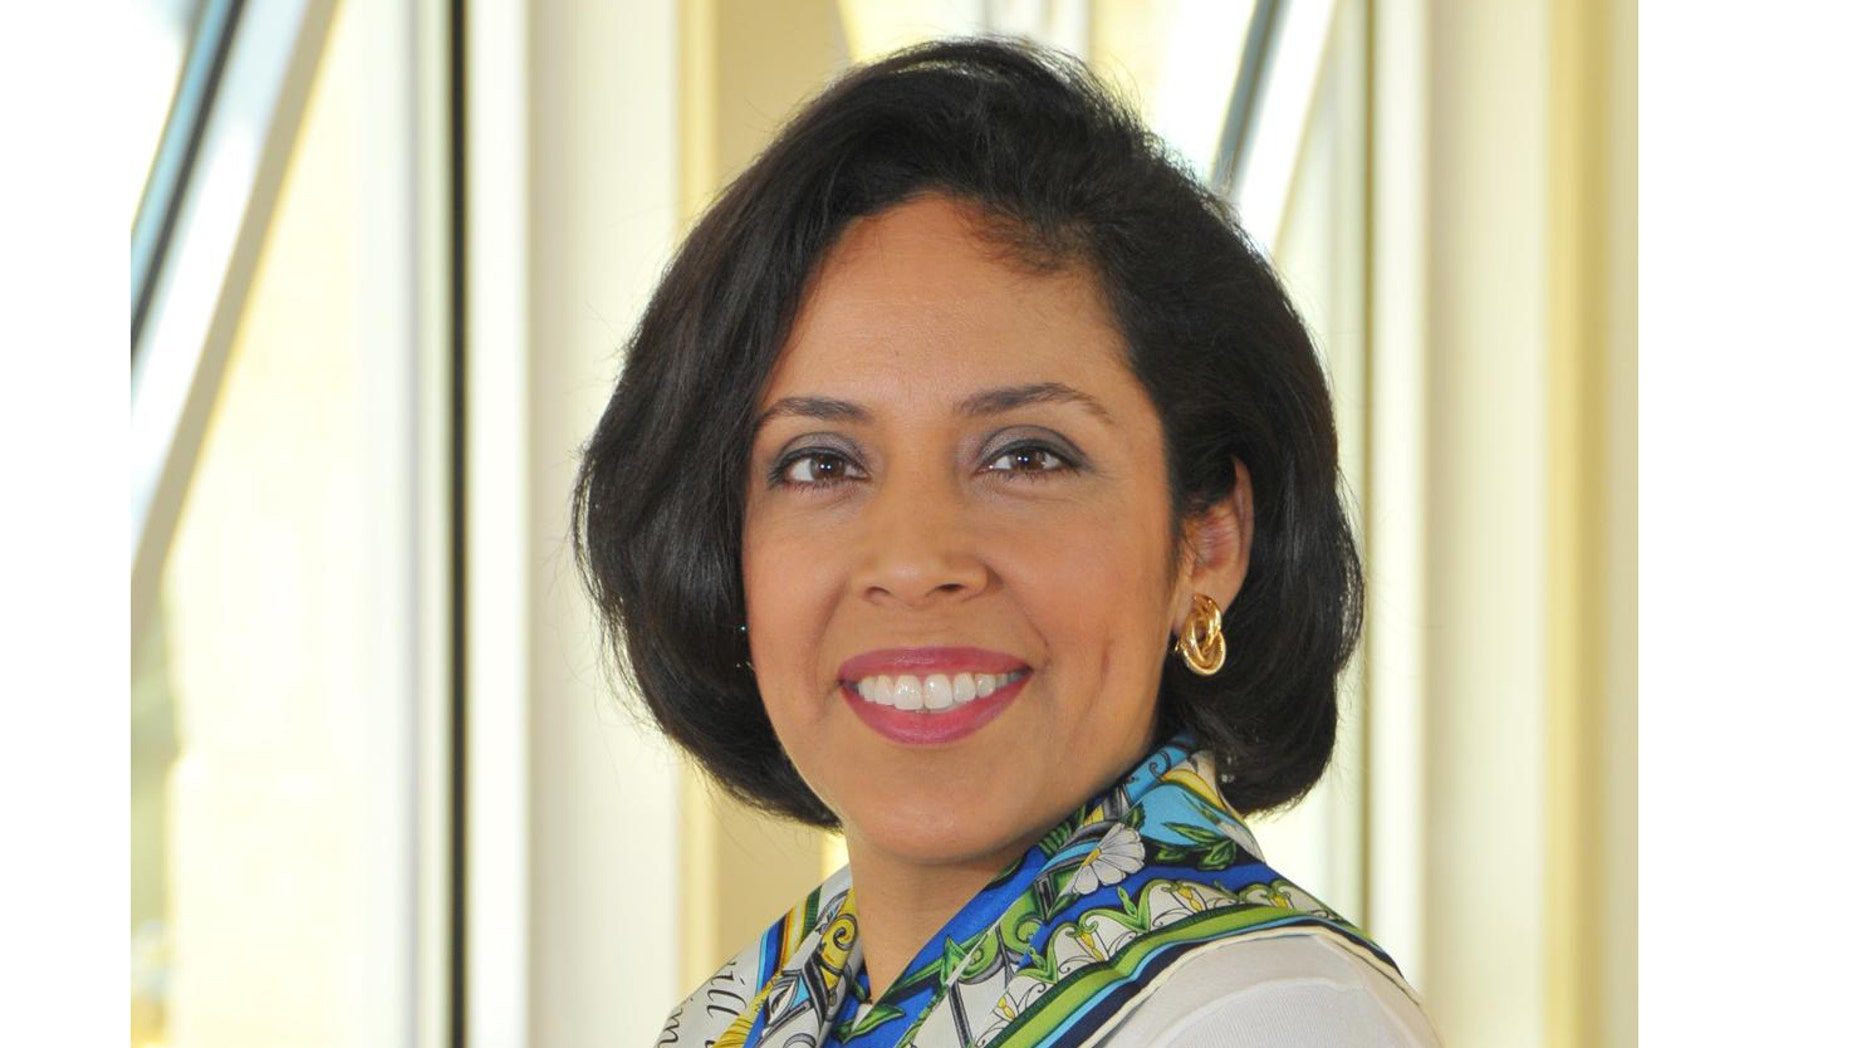 Anna Maria Chávez has just been named president of the Girl Scouts national organization. She is the first Latina to head the iconoclastic group.